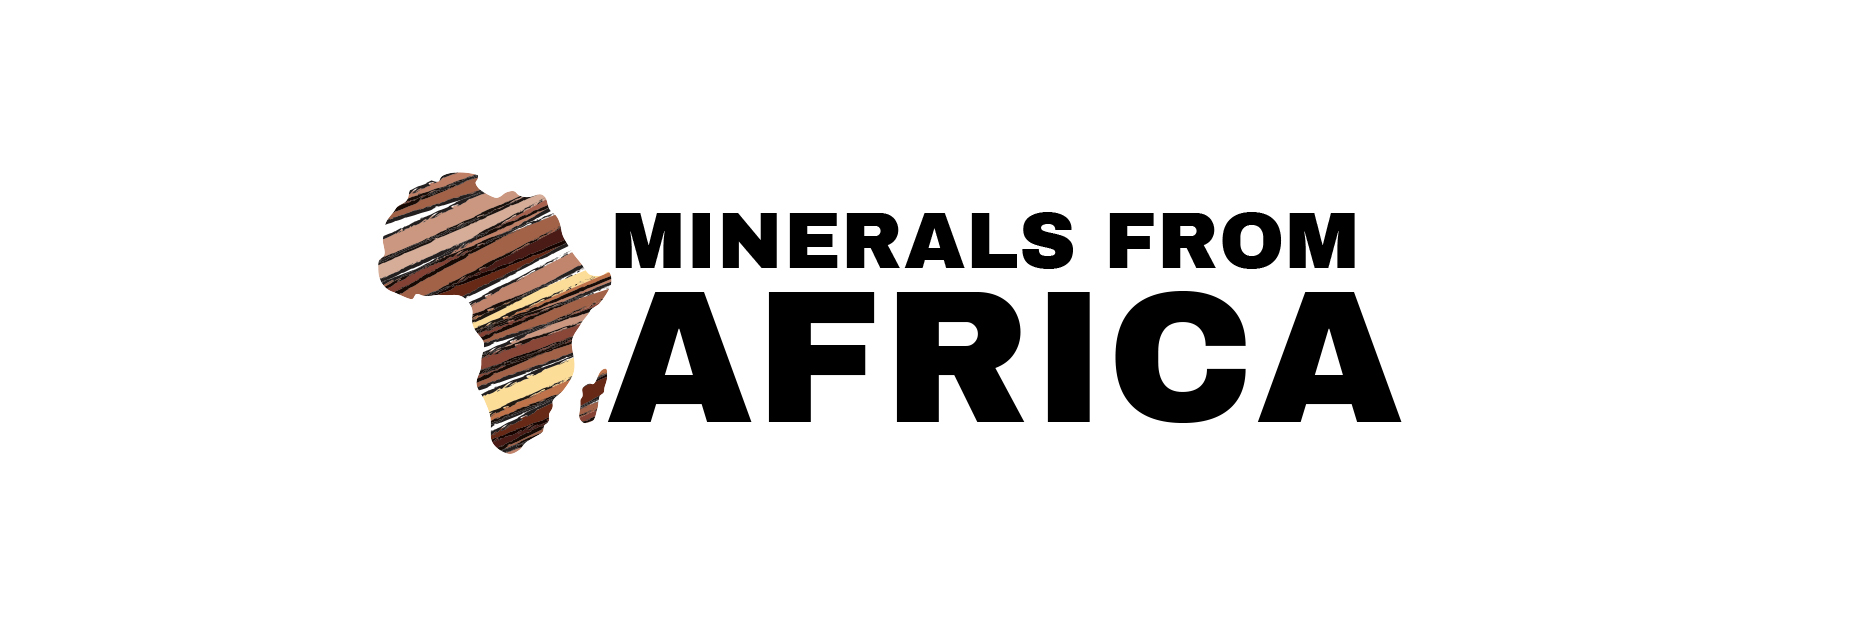 Minerals From Africa